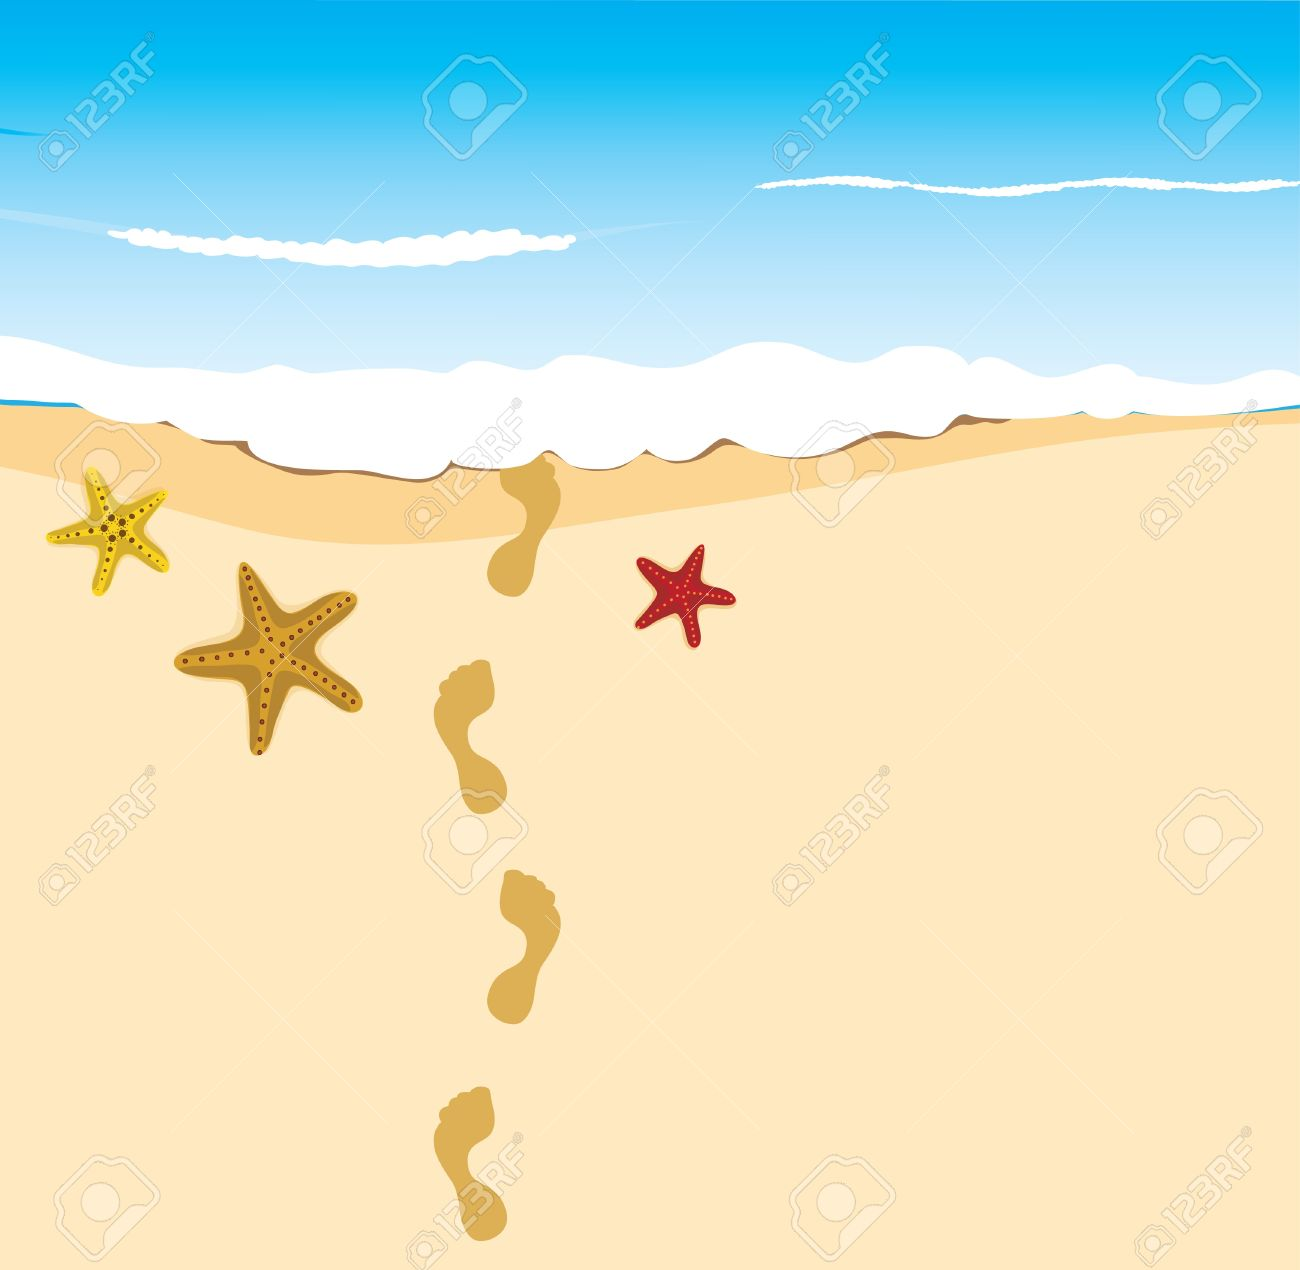 510 Footprint Sand Stock Vector Illustration And Royalty Free ...